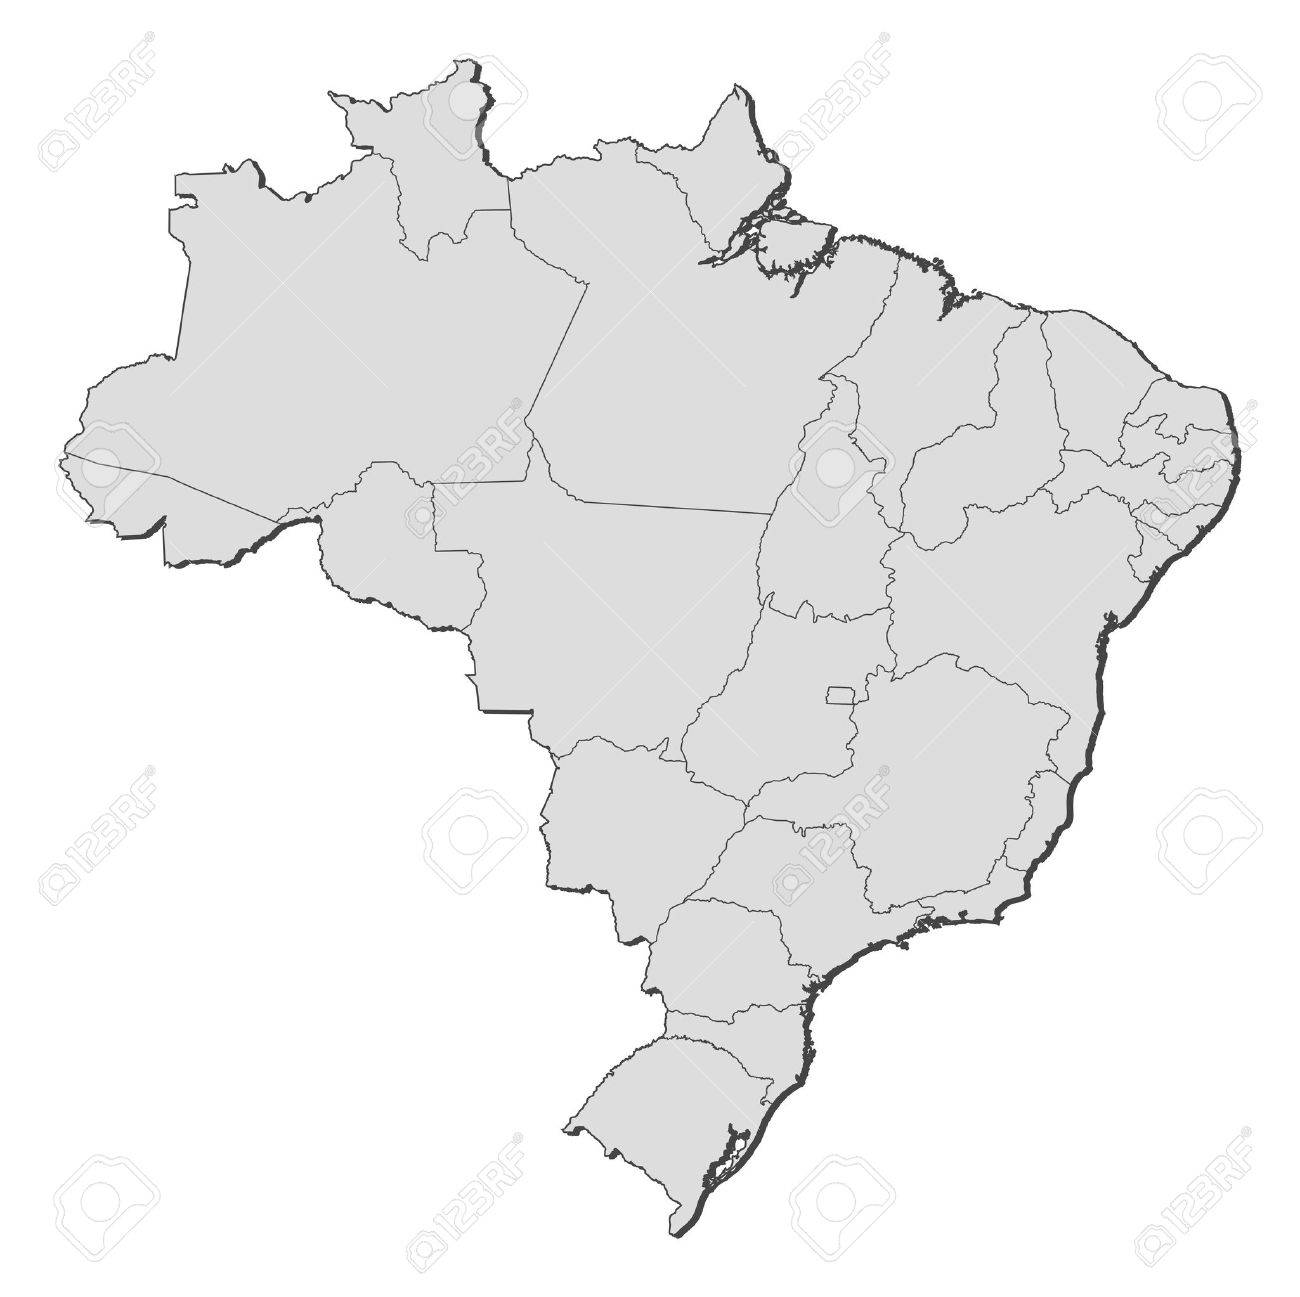 Political Simple Map Of Brazil Cropped Outside Brazil Regions - Brazil states map